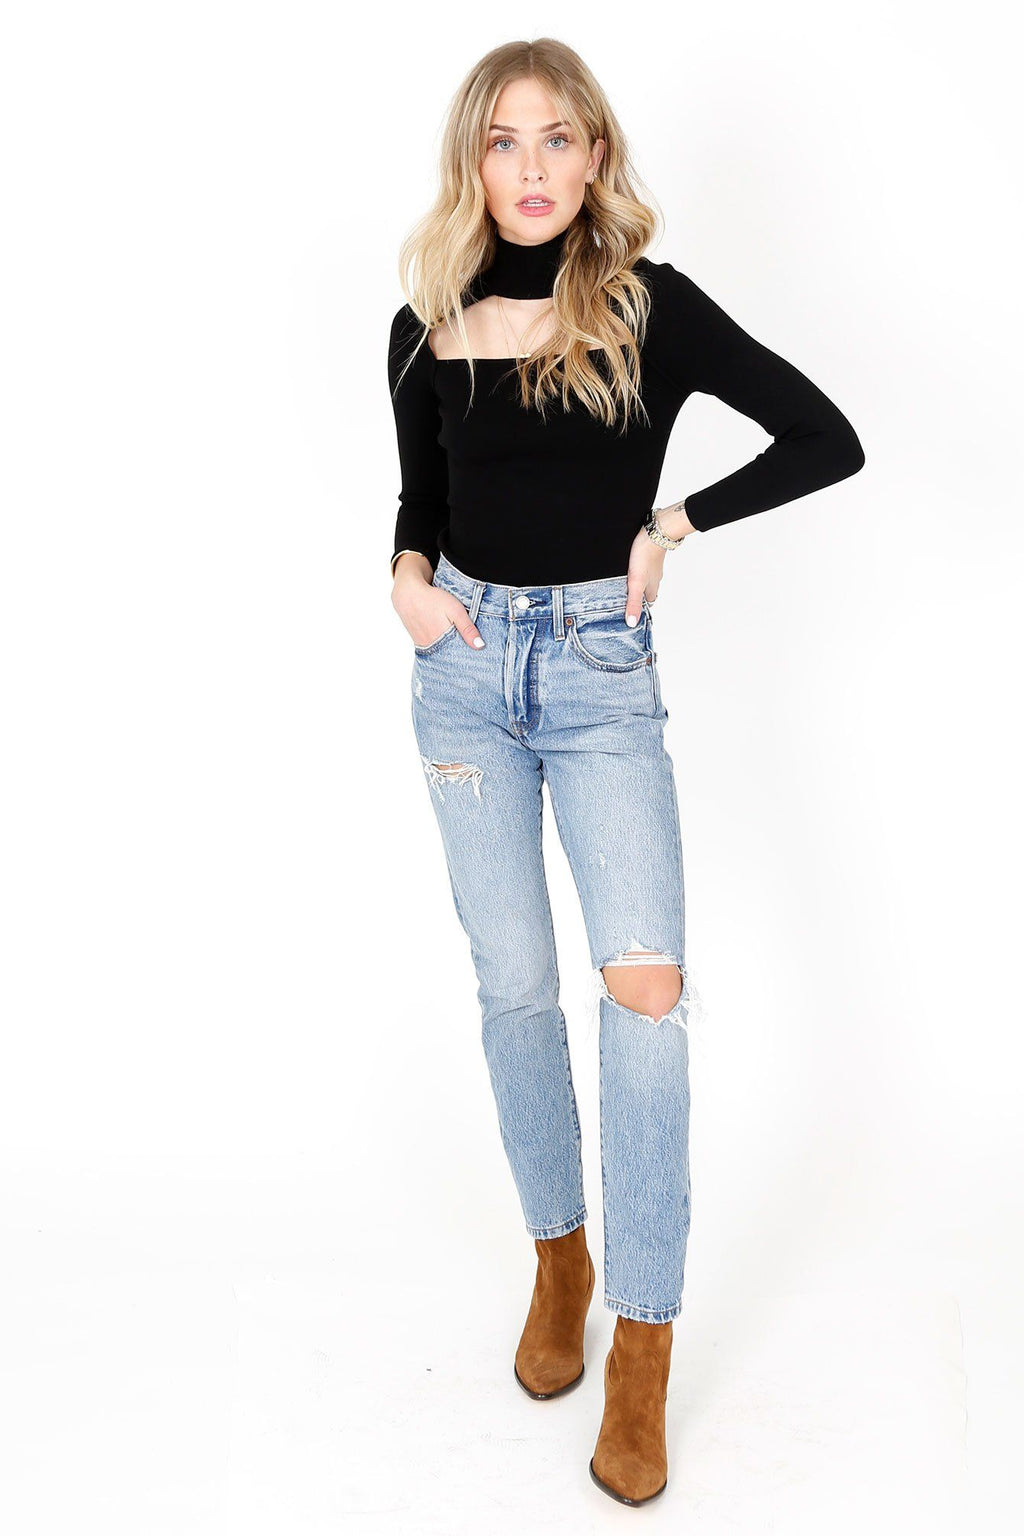 A.L.C. | Brianne Top - Black